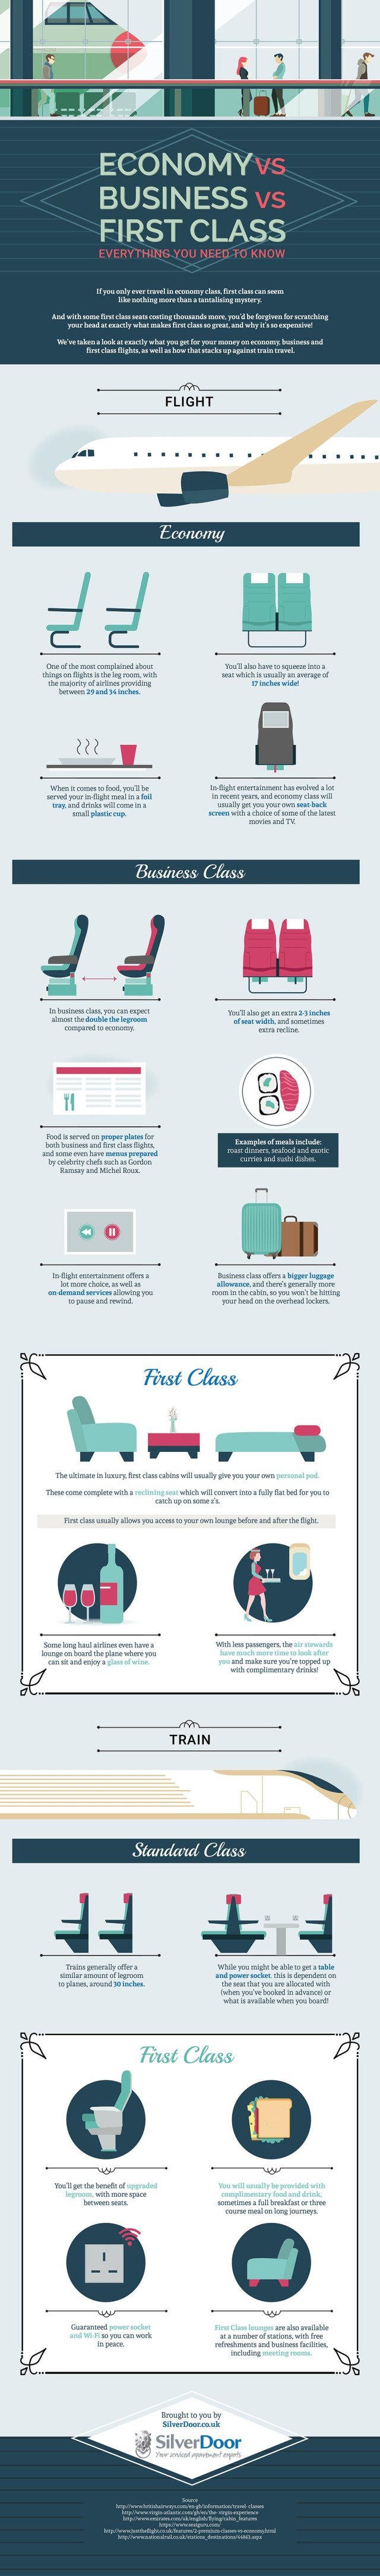 economy-vs-business-vs-first-class